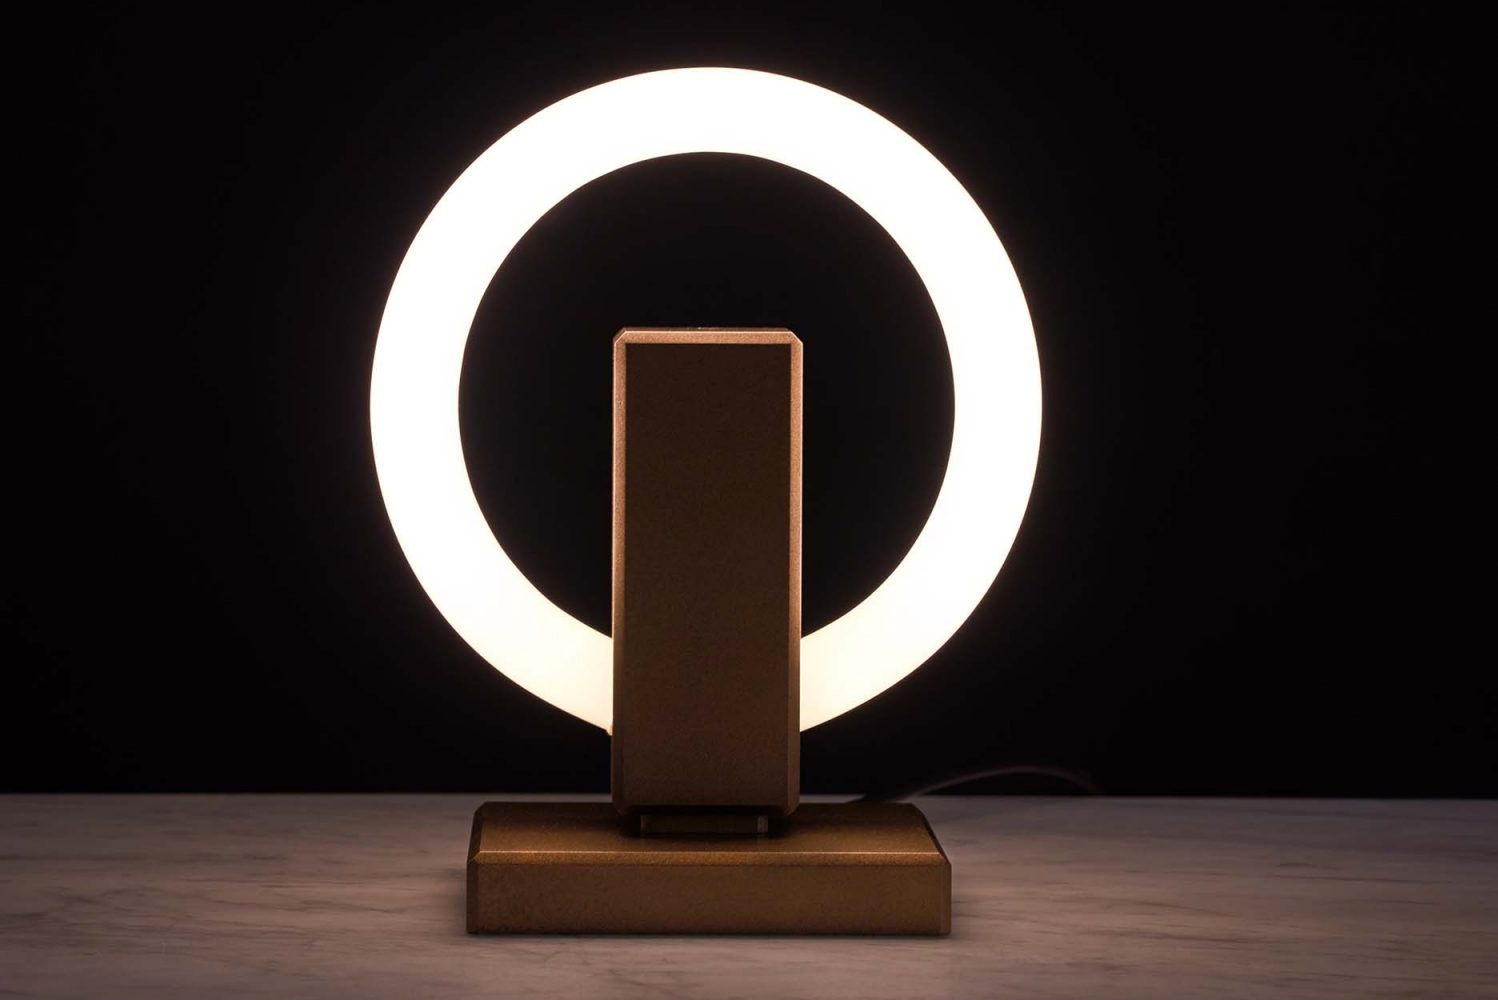 The lamp can be placed on a pedestal to create a sculptural piece of art.